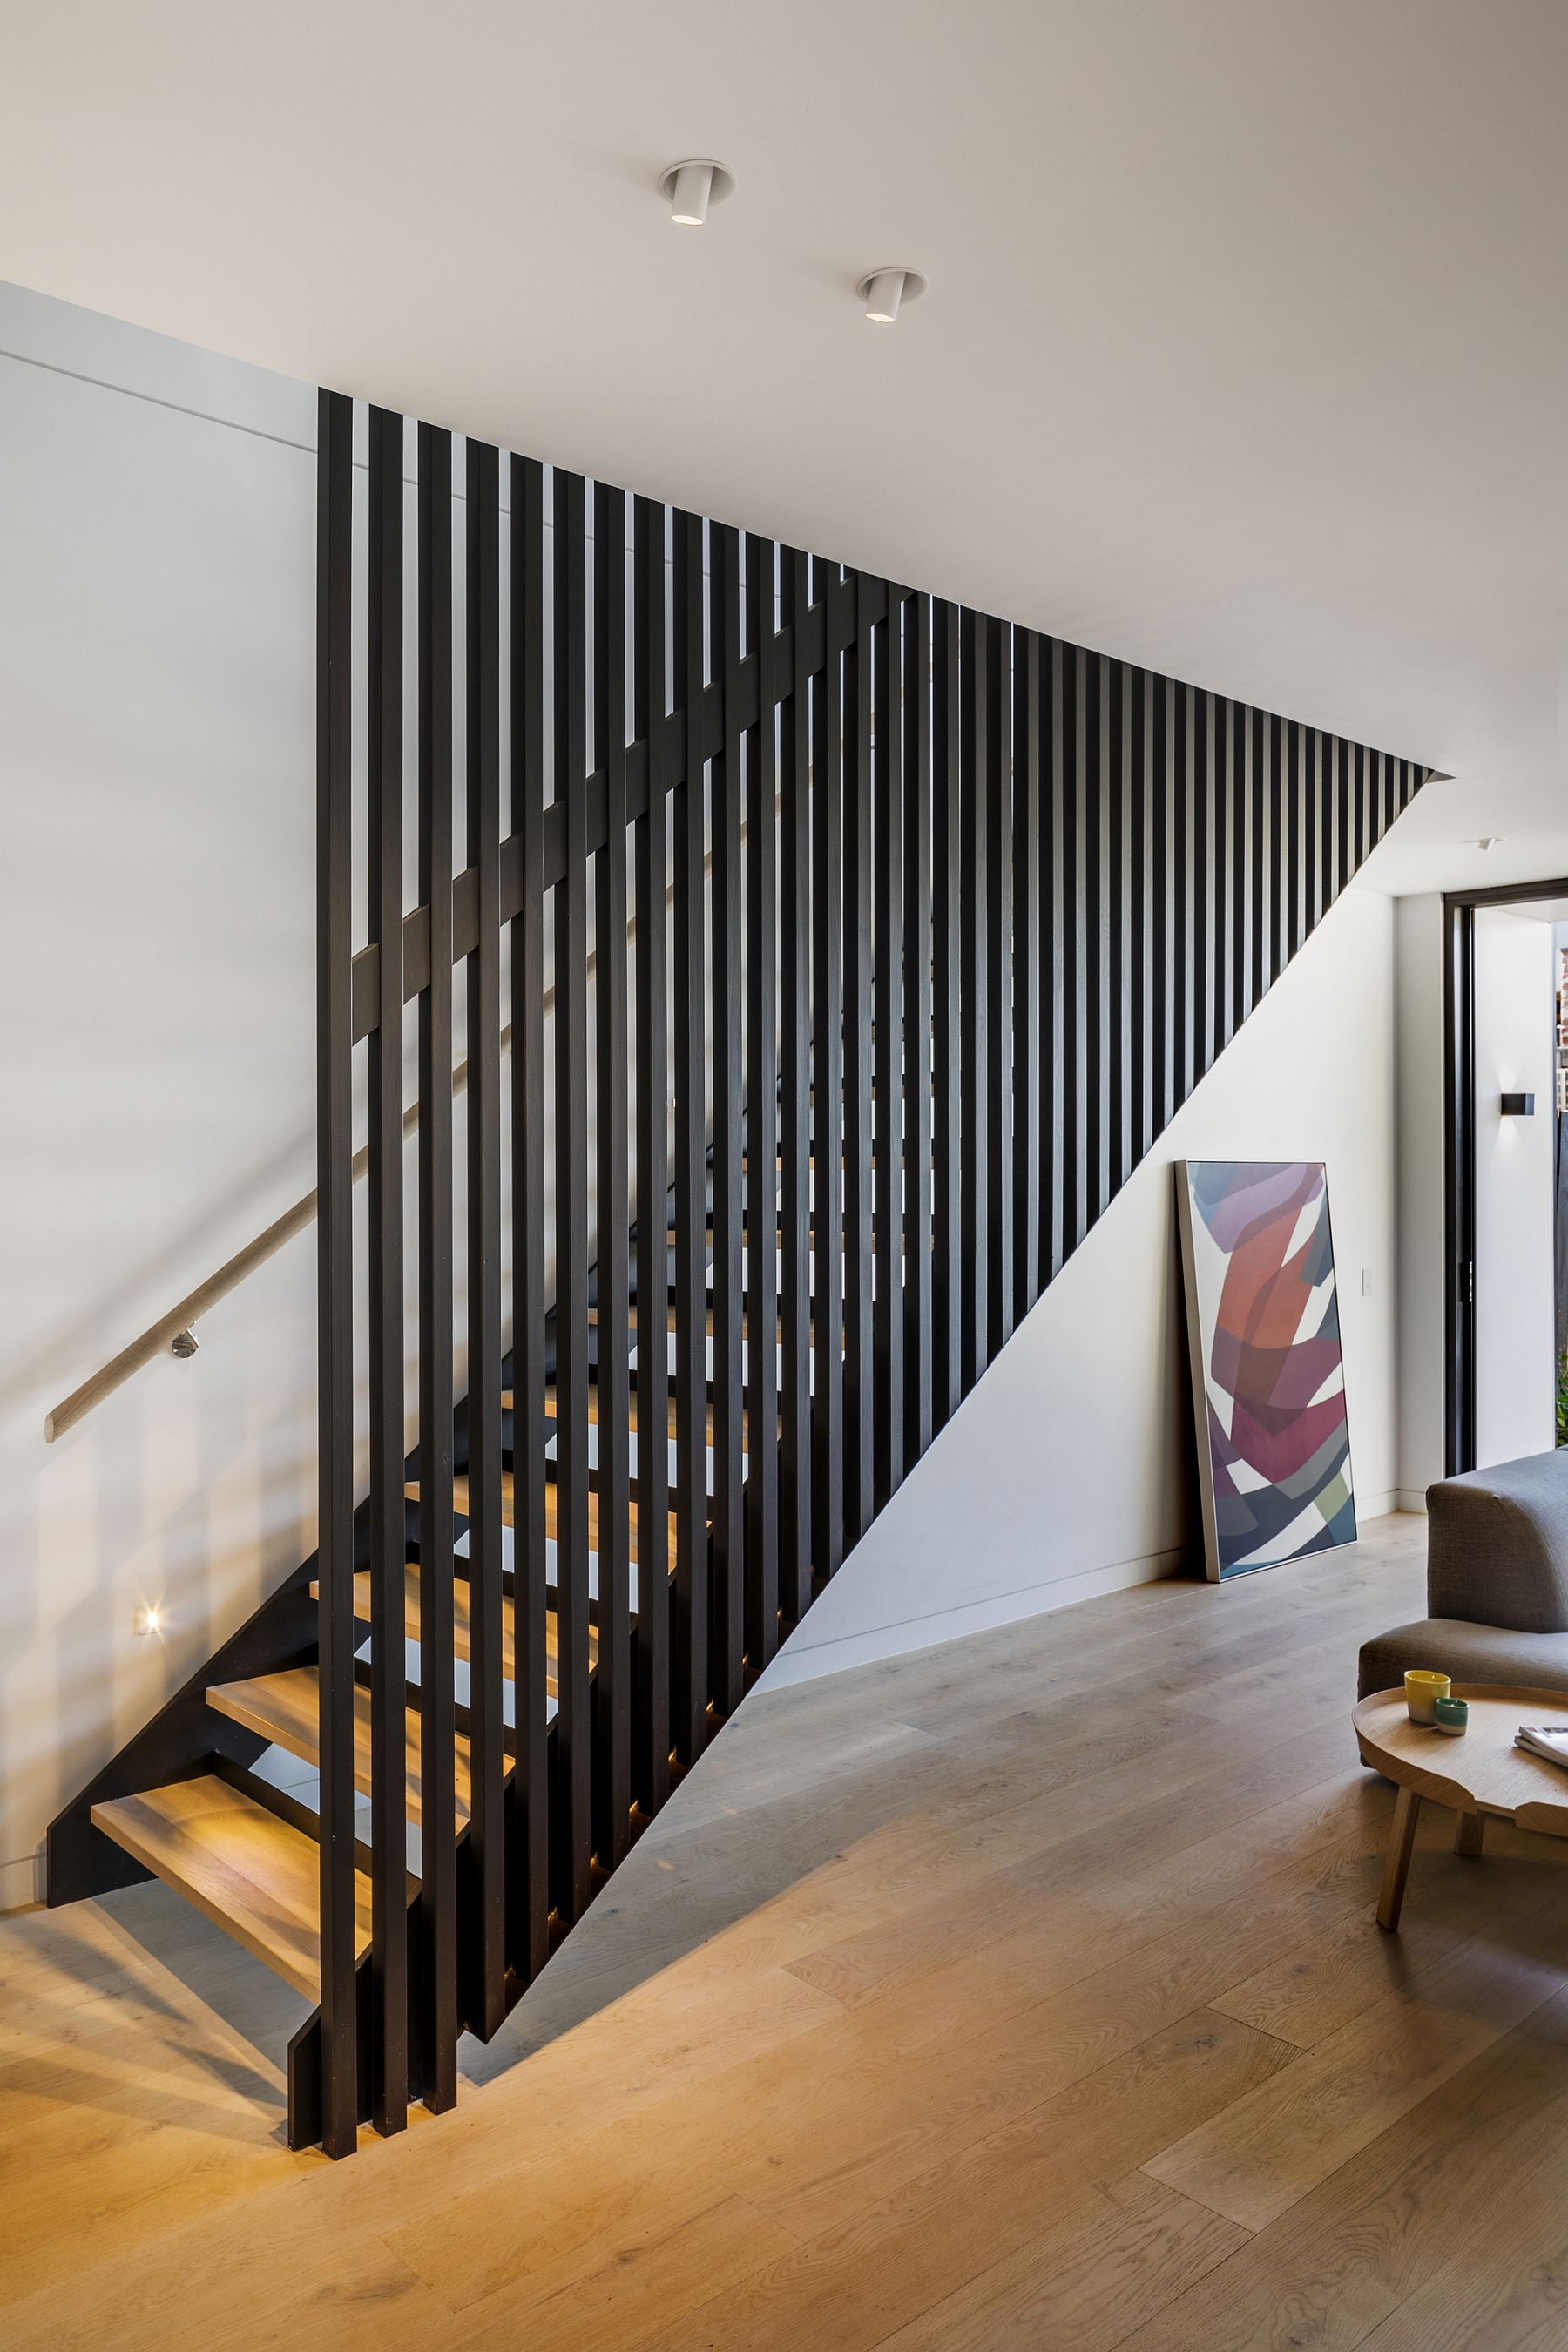 Staircase feels both modern and organic inside the house